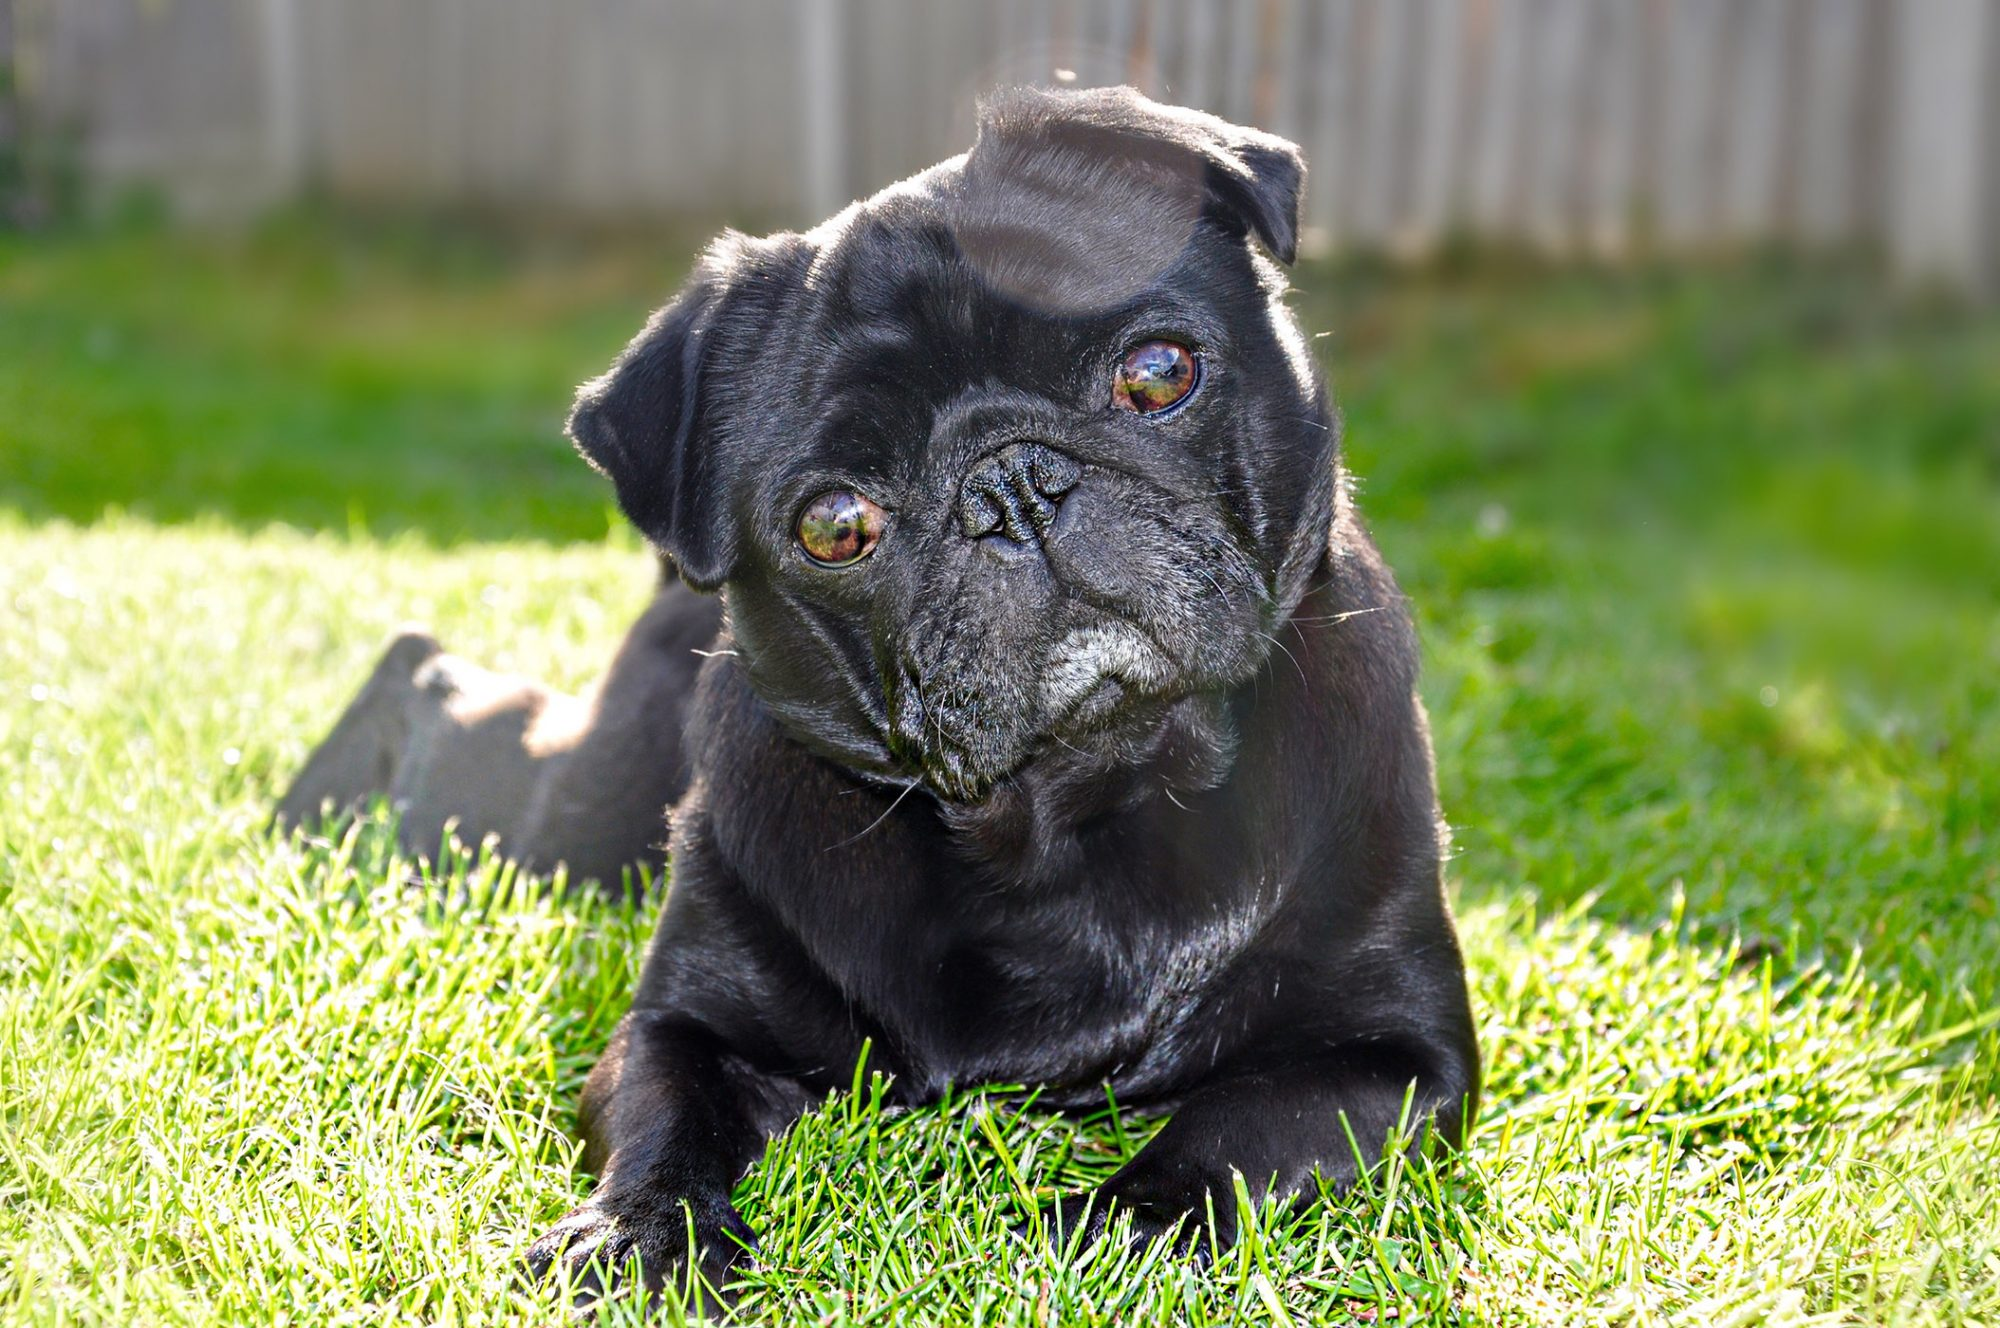 Black pug lying in the grass